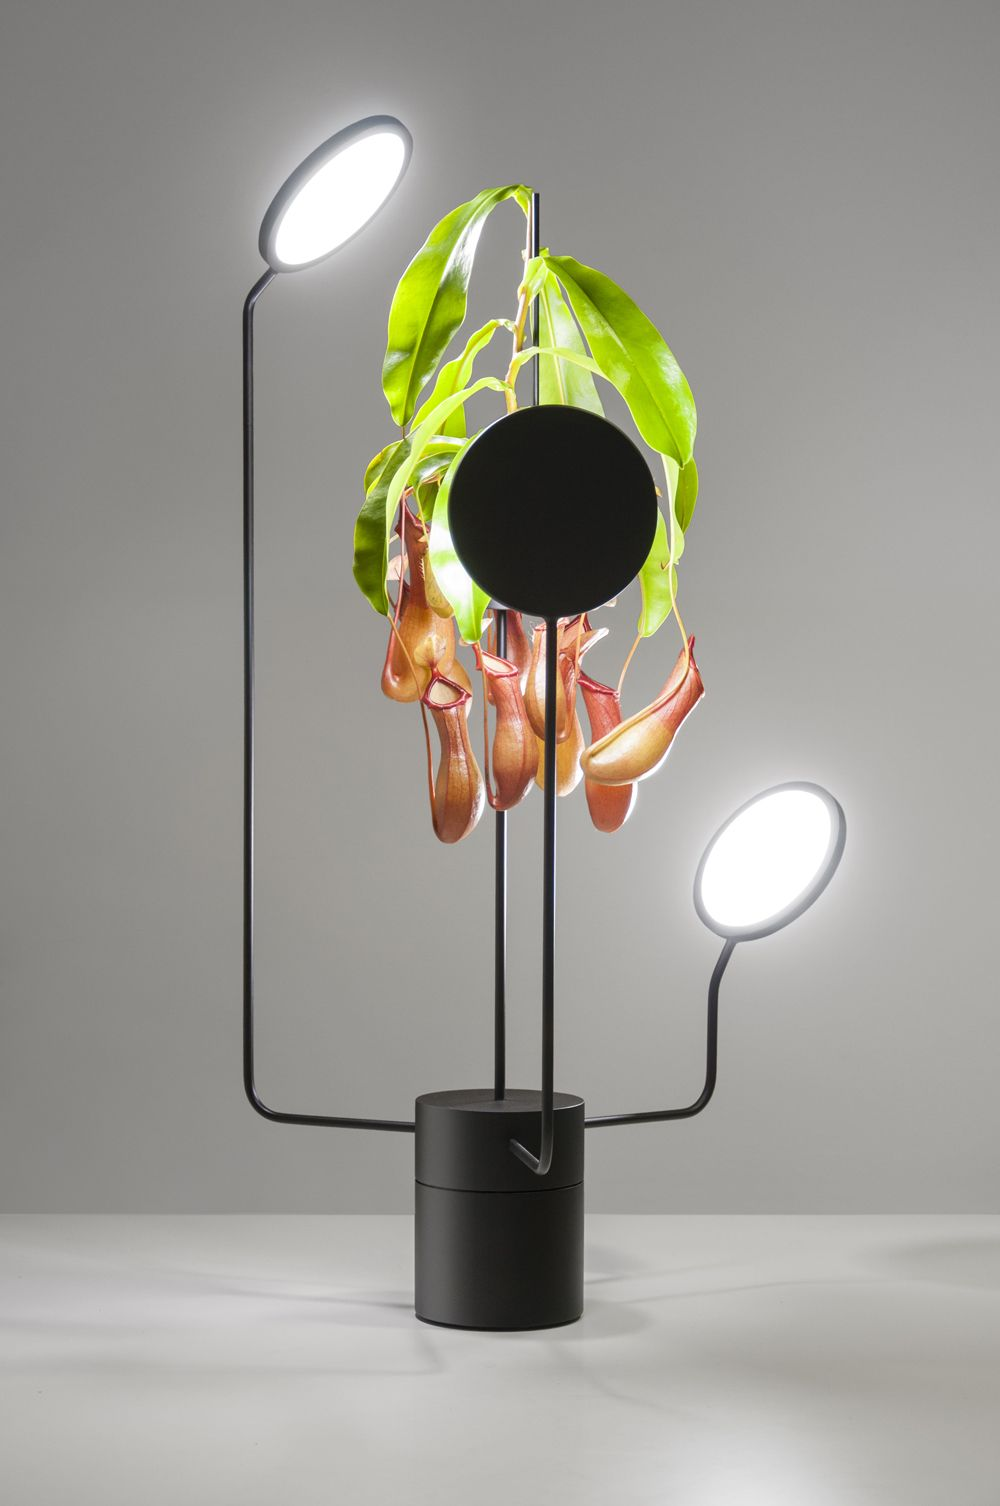 Viride Exploits Advances In Artificial Lighting To Help Plants Thrive Inside Moco Loco Lighting Concepts Lights Lamp